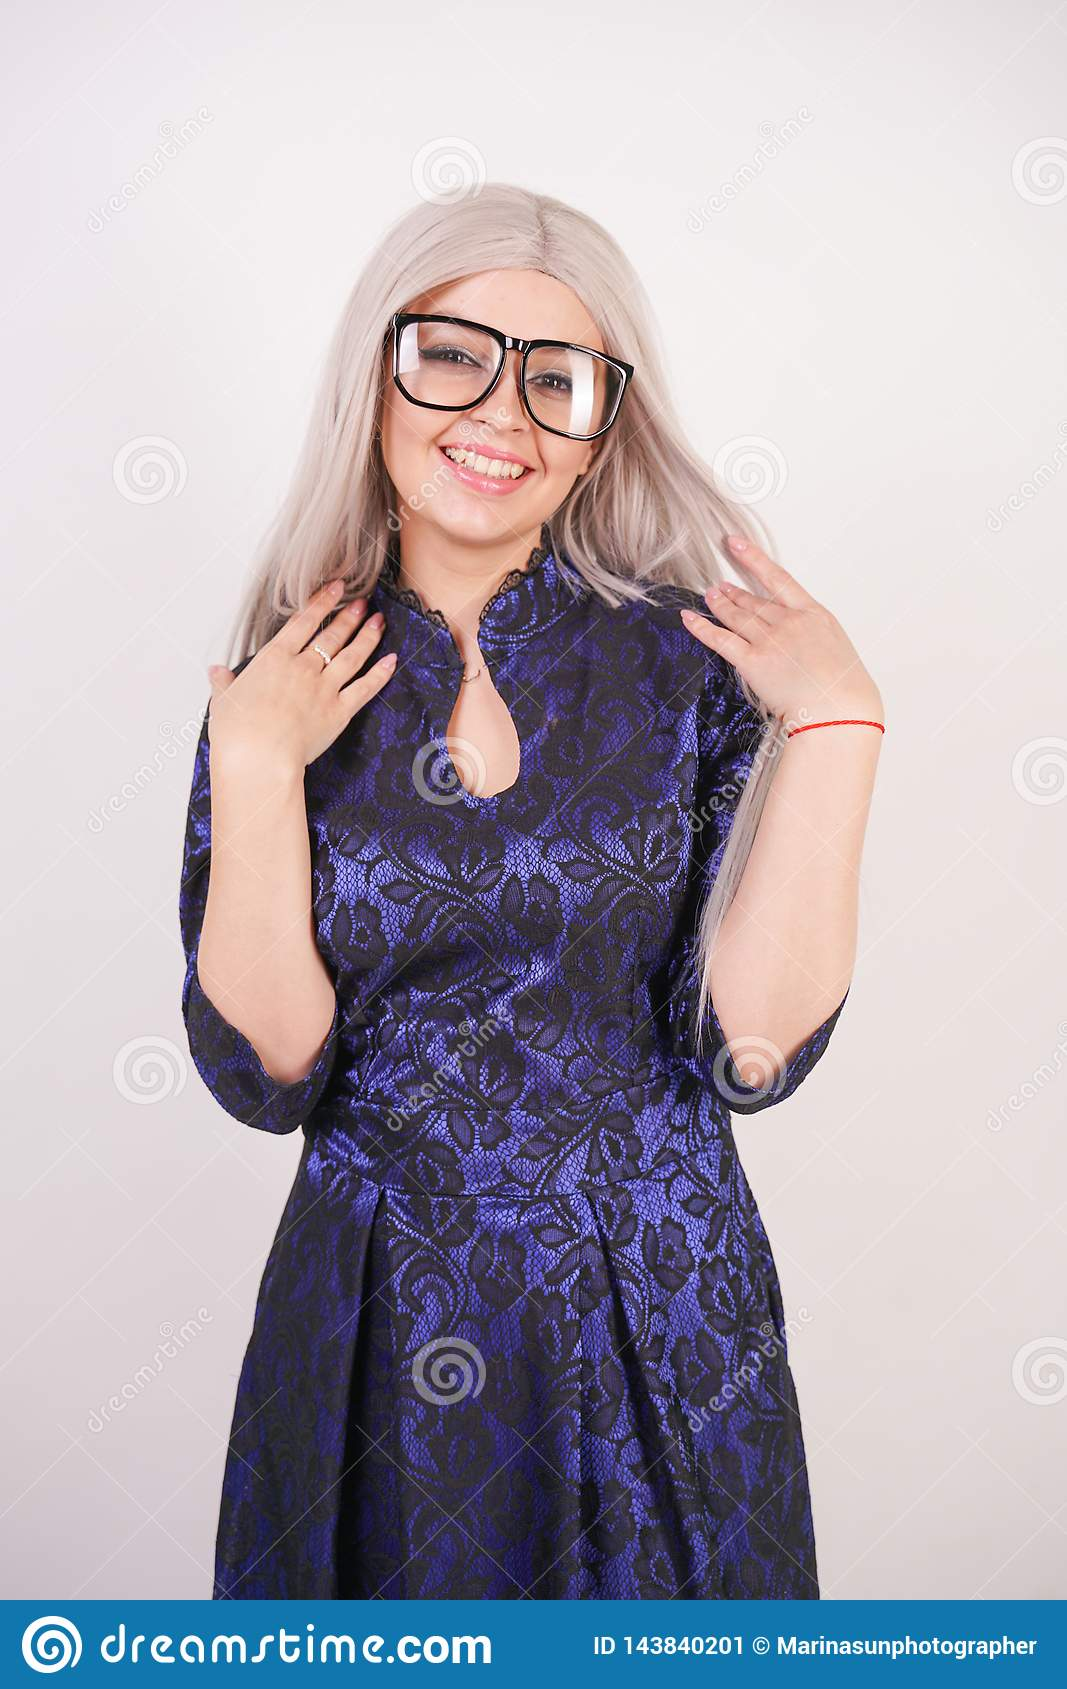 Beautiful blonde girl with glasses in luxurious blue with black lace evening dress on white background in Studio